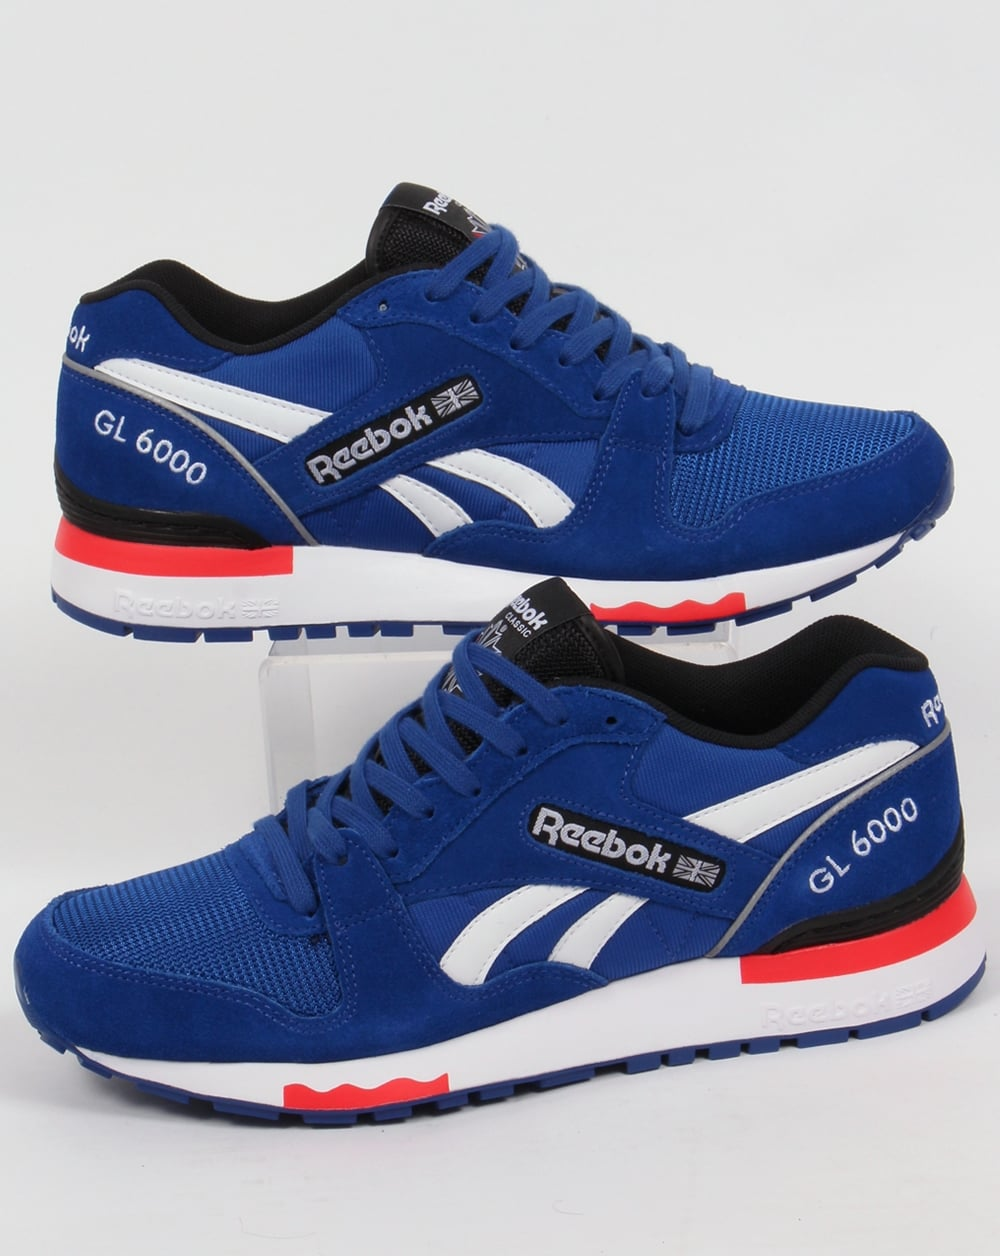 d0198d95b1d155 Reebok Reebok GL 6000 PP Trainers Dark Royal Red